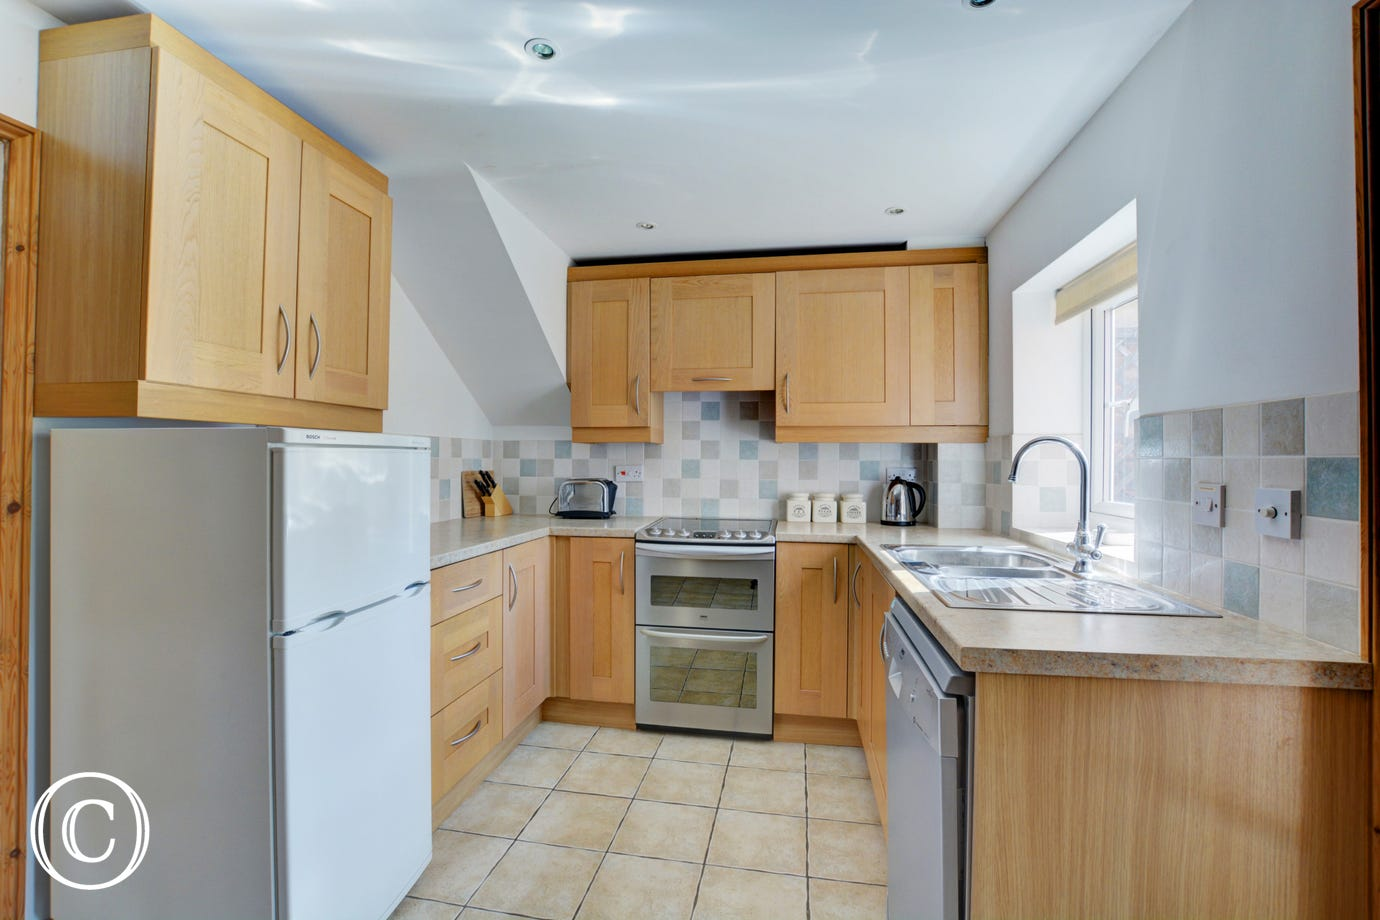 Modern, bright, contemporary kitchen with the added benefit of a shared utility room and a ground floor WC